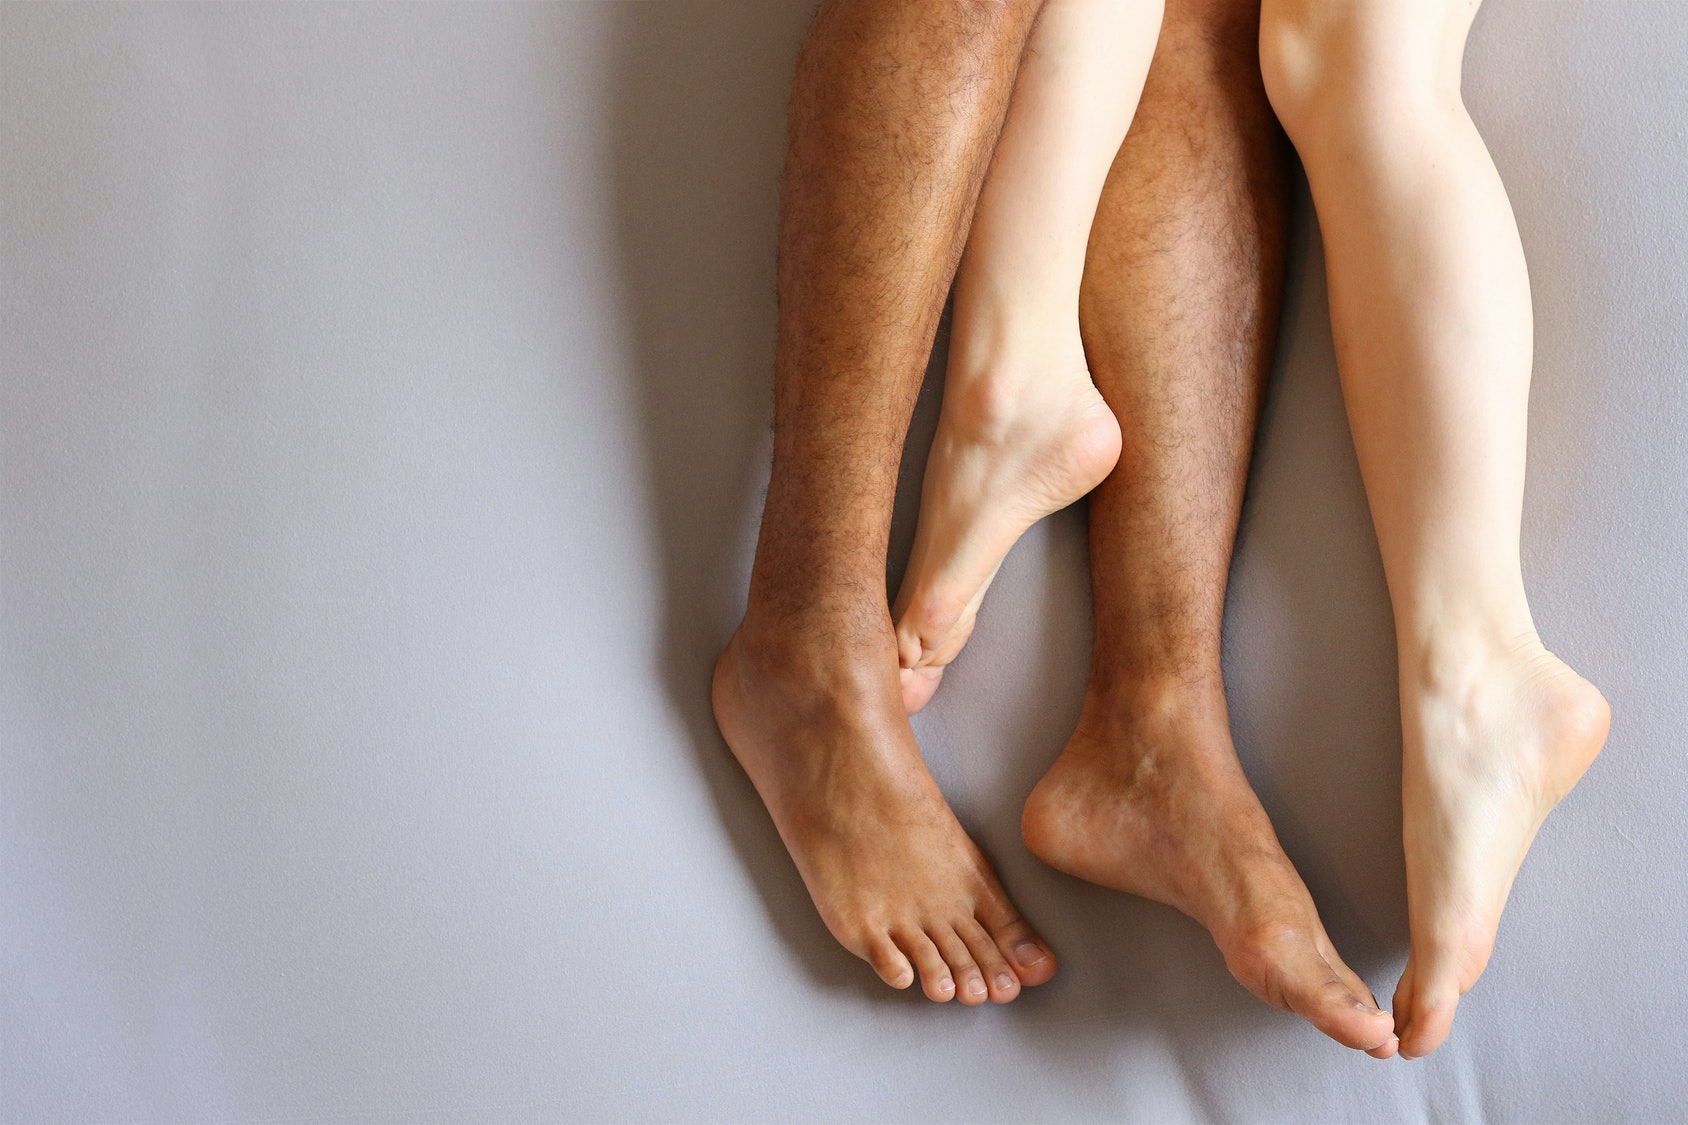 How to be more sexually active with your partner